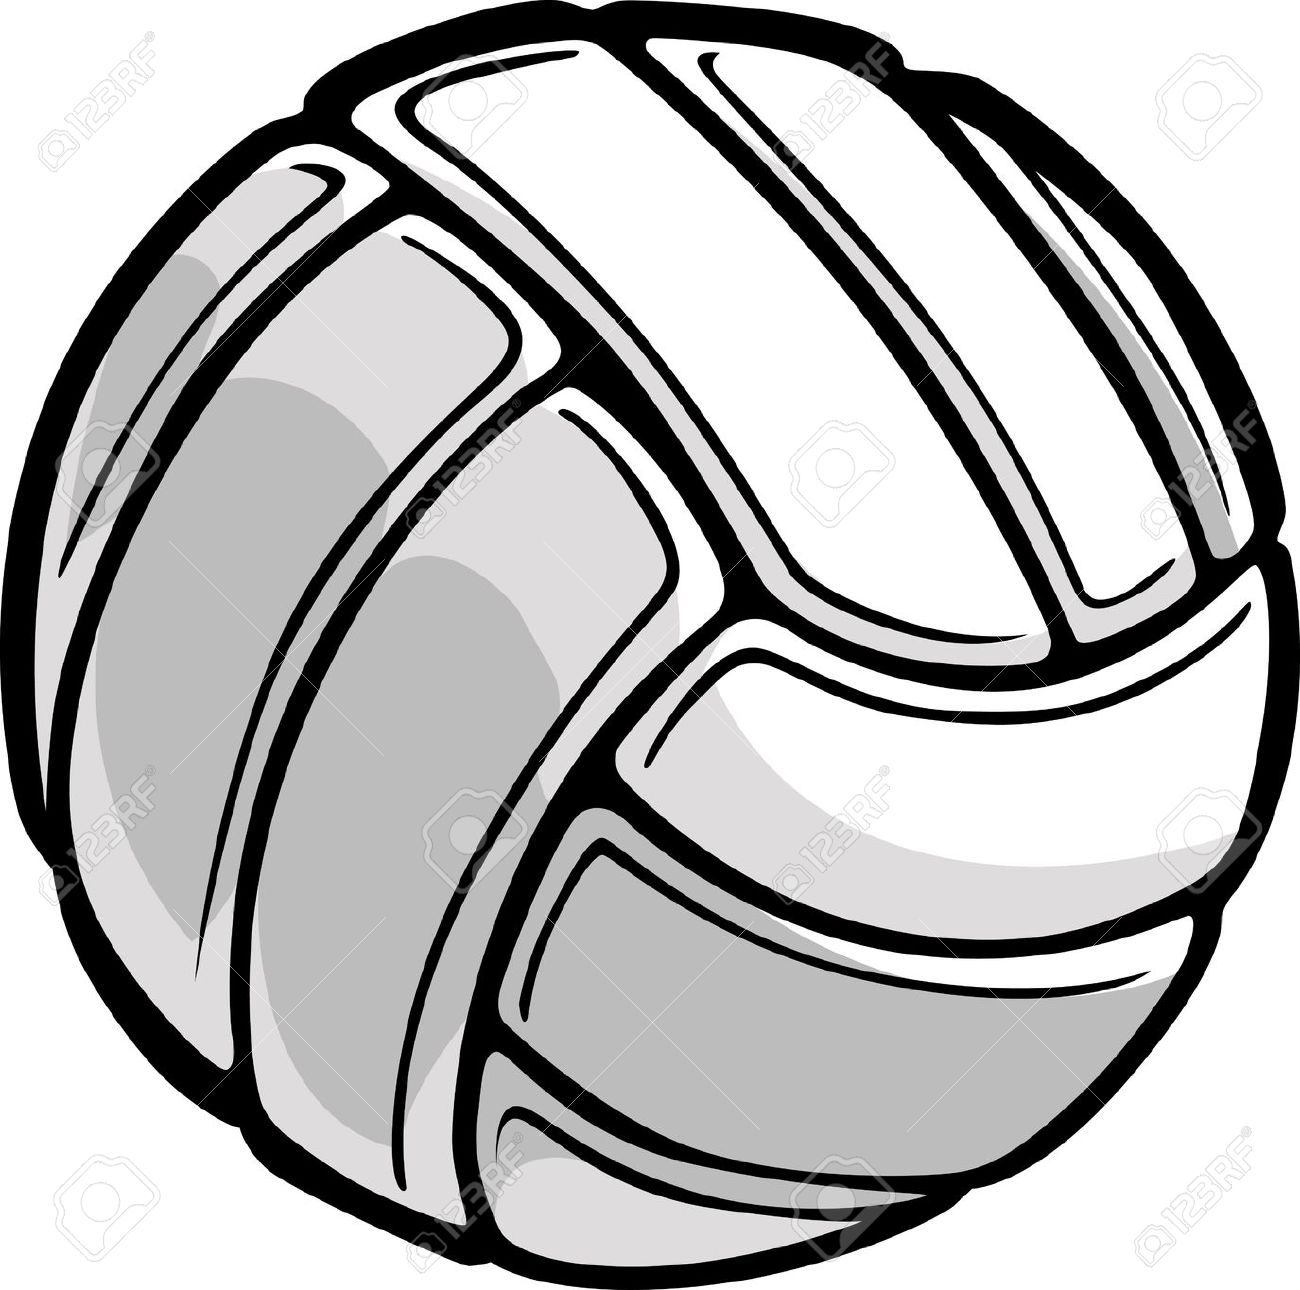 hight resolution of 1300x1290 volleyball images clip art volleyballspikeclipart